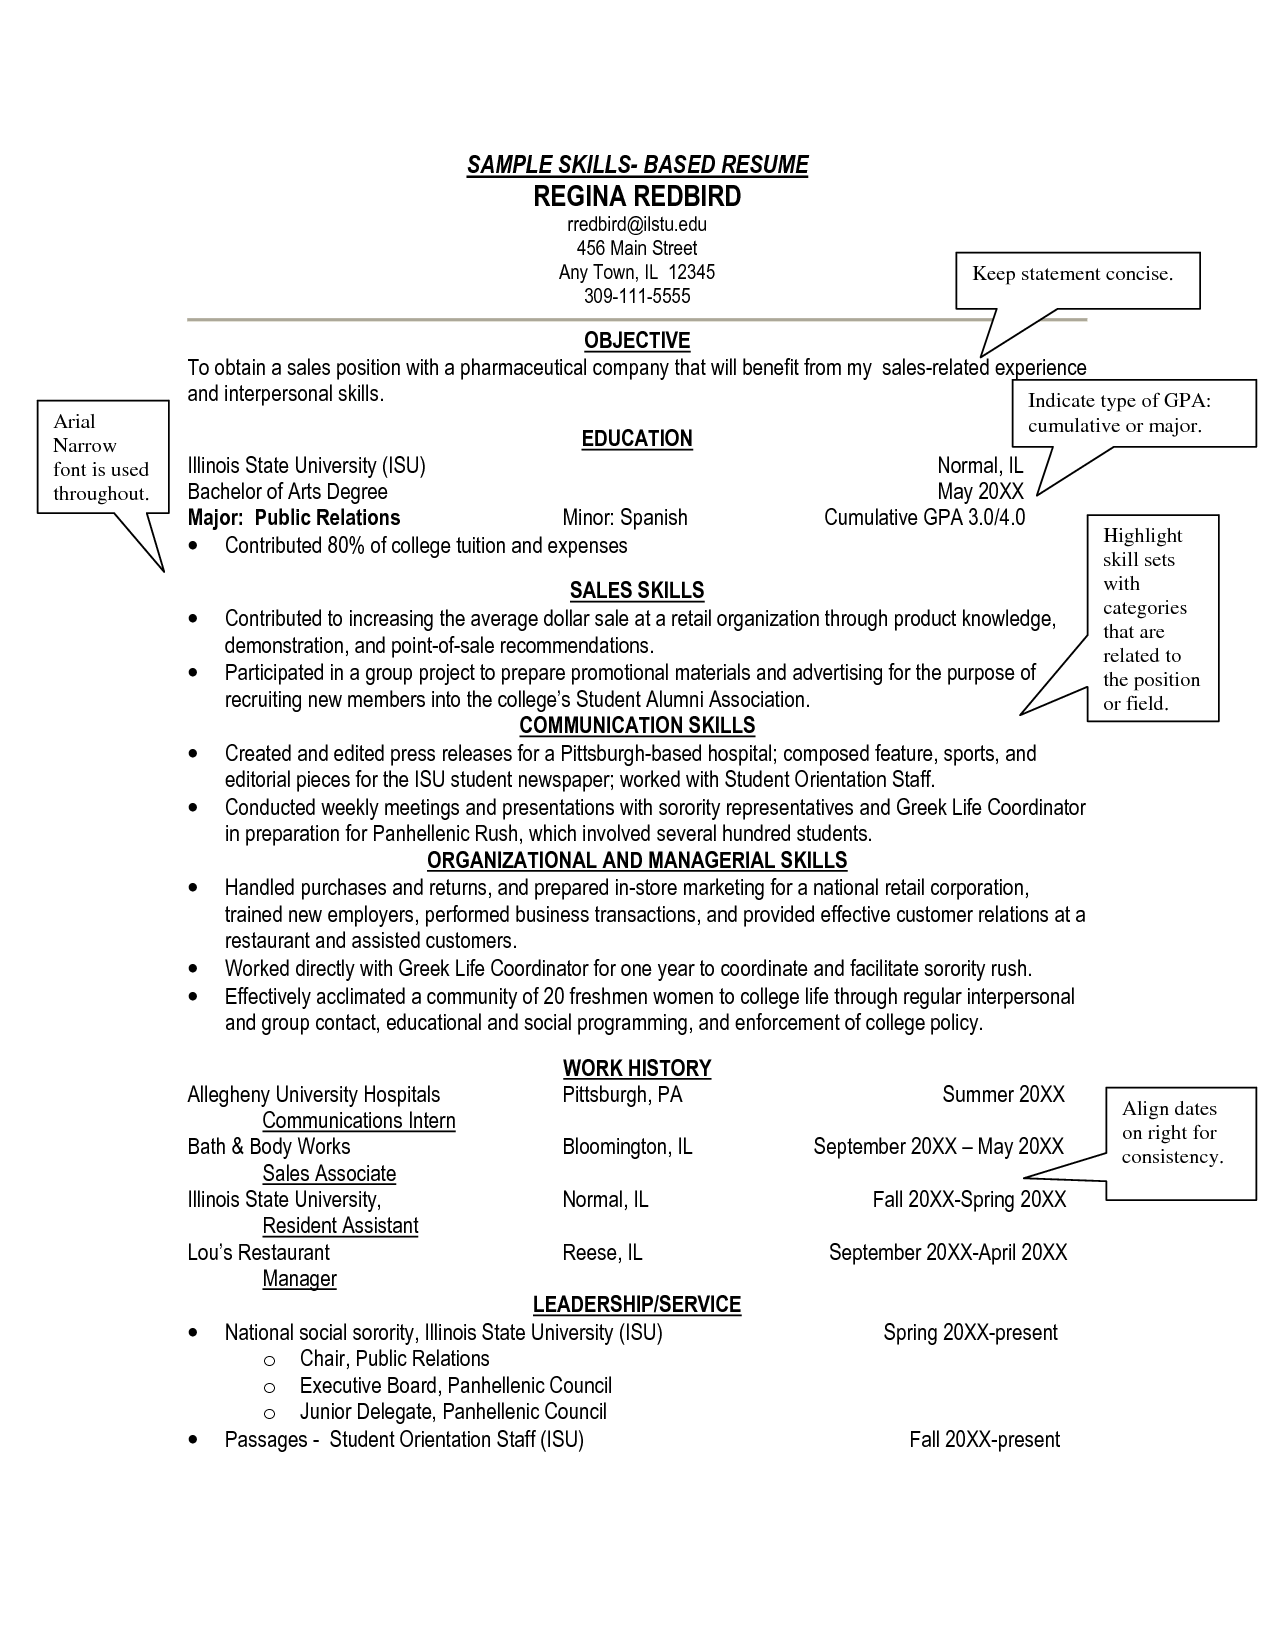 Examples Of Skills For Resume Endearing Sample Skills Resume Template  Interview  Pinterest  Sample .